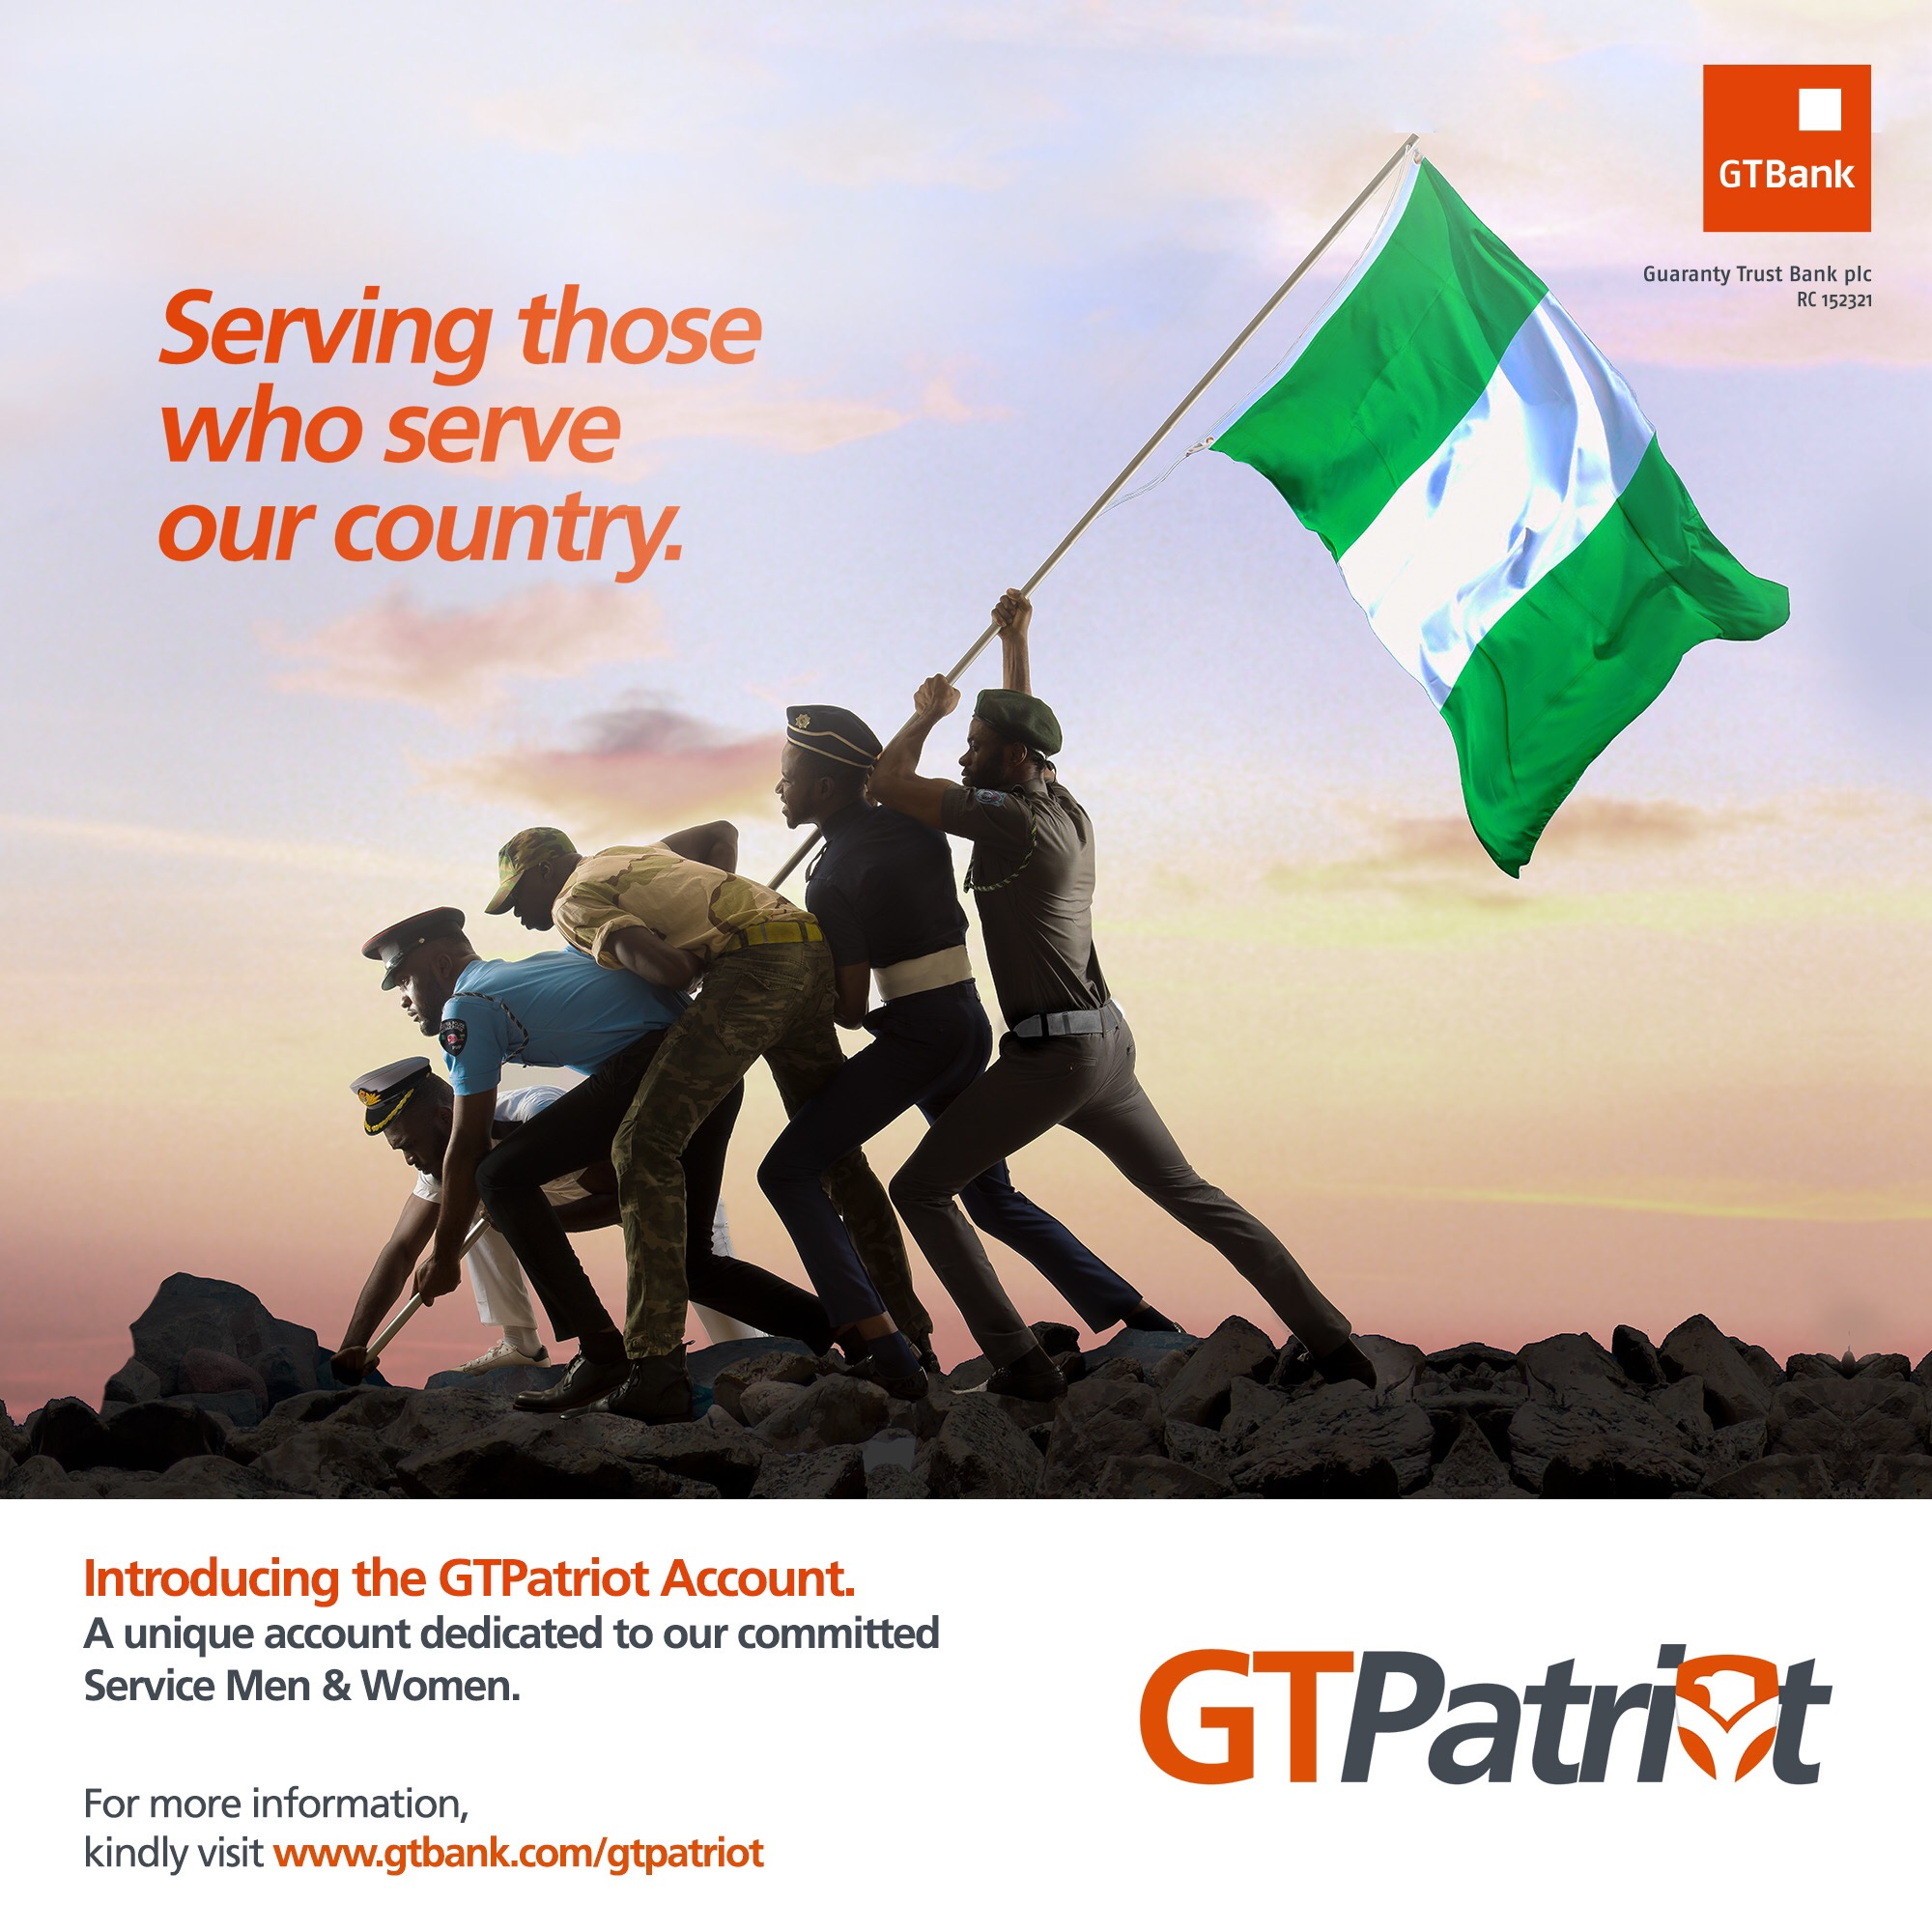 GTBank Launches GTPatriot, A Subsidized Banking Package For Nigeria's Military And Paramilitary Personnel